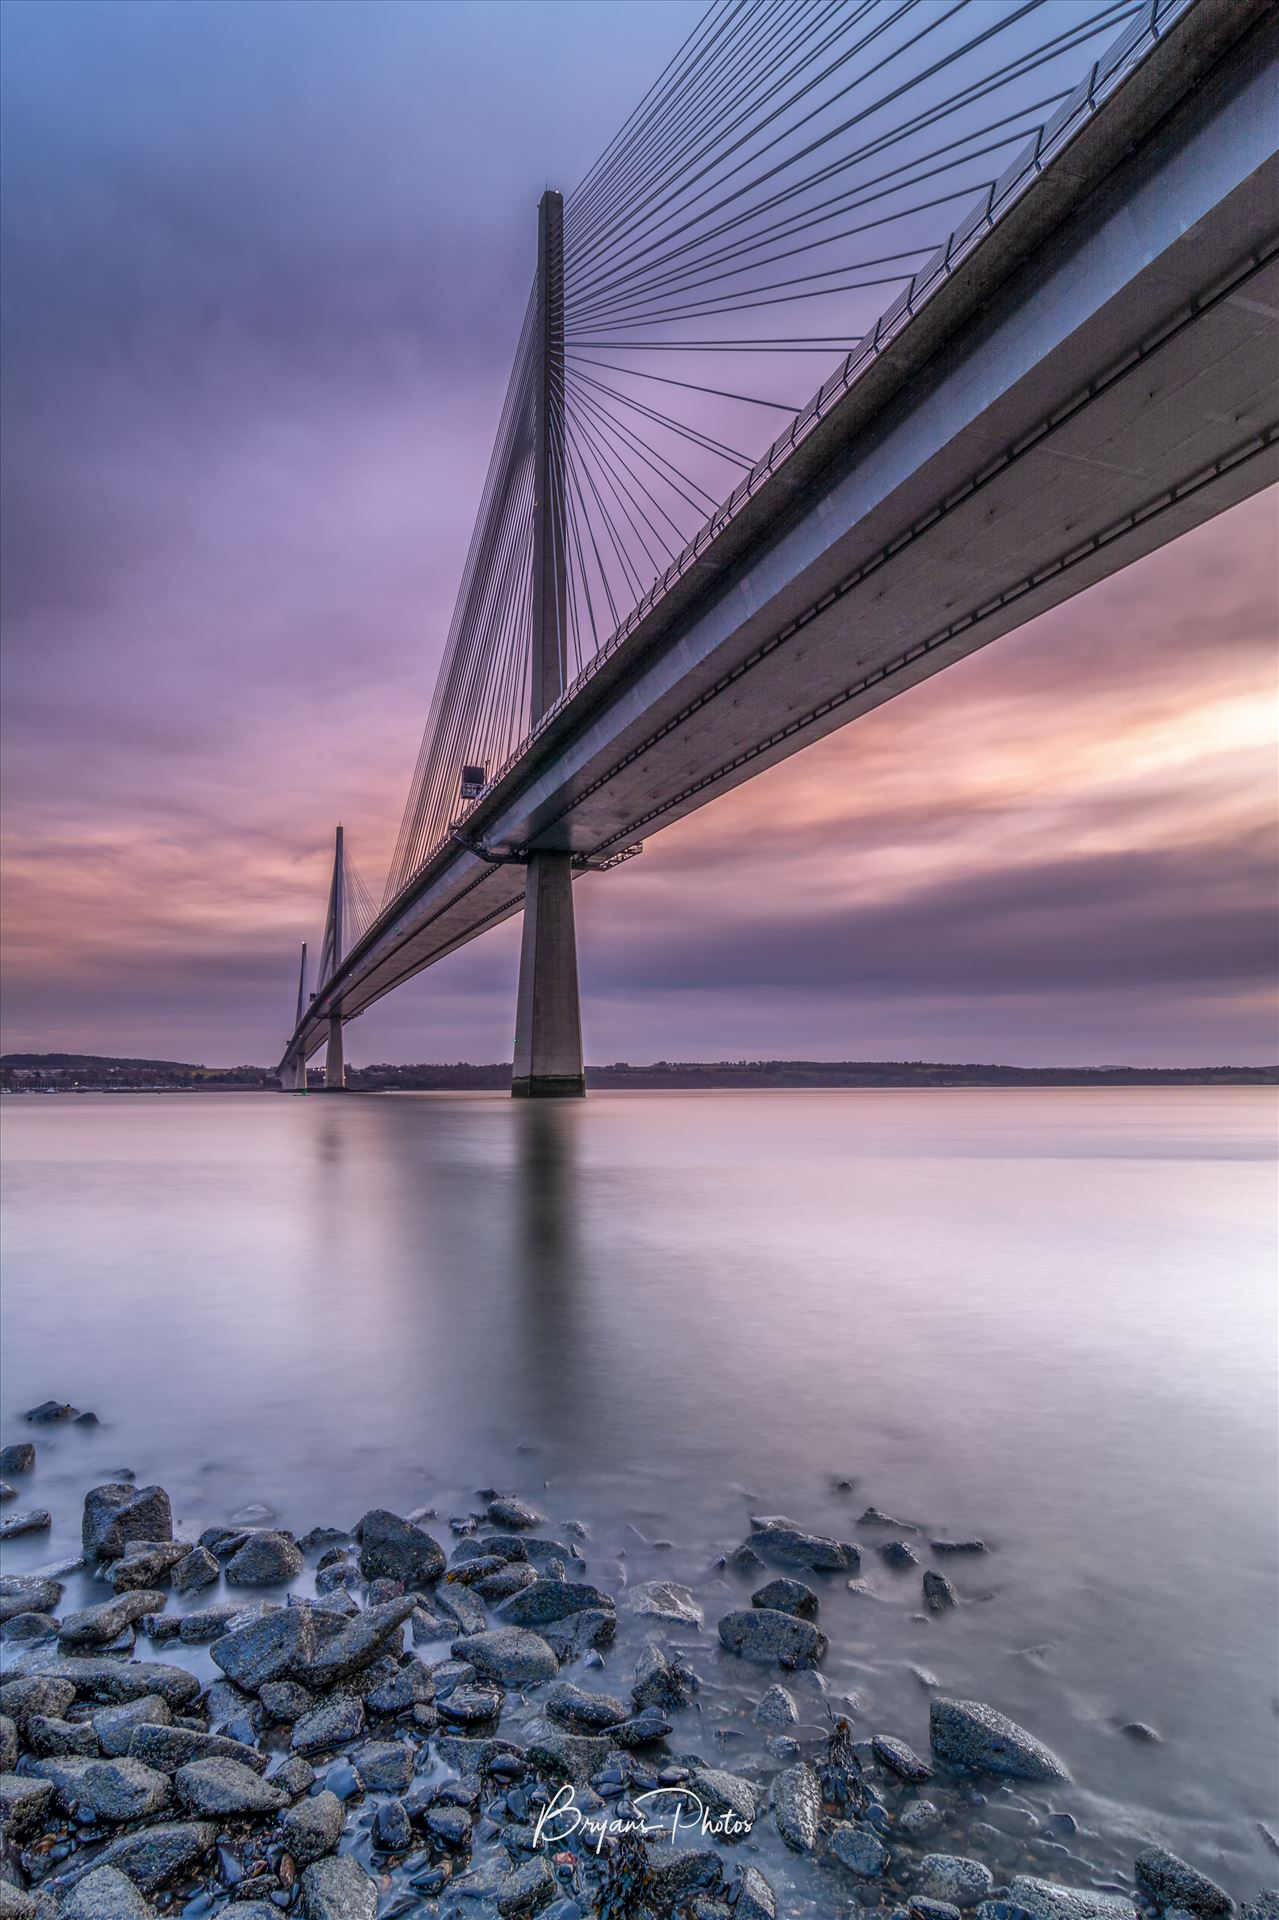 The Crossing A portrait photograph of the Queensferry Crossing taken from North Queensferry at sunset. by Bryans Photos